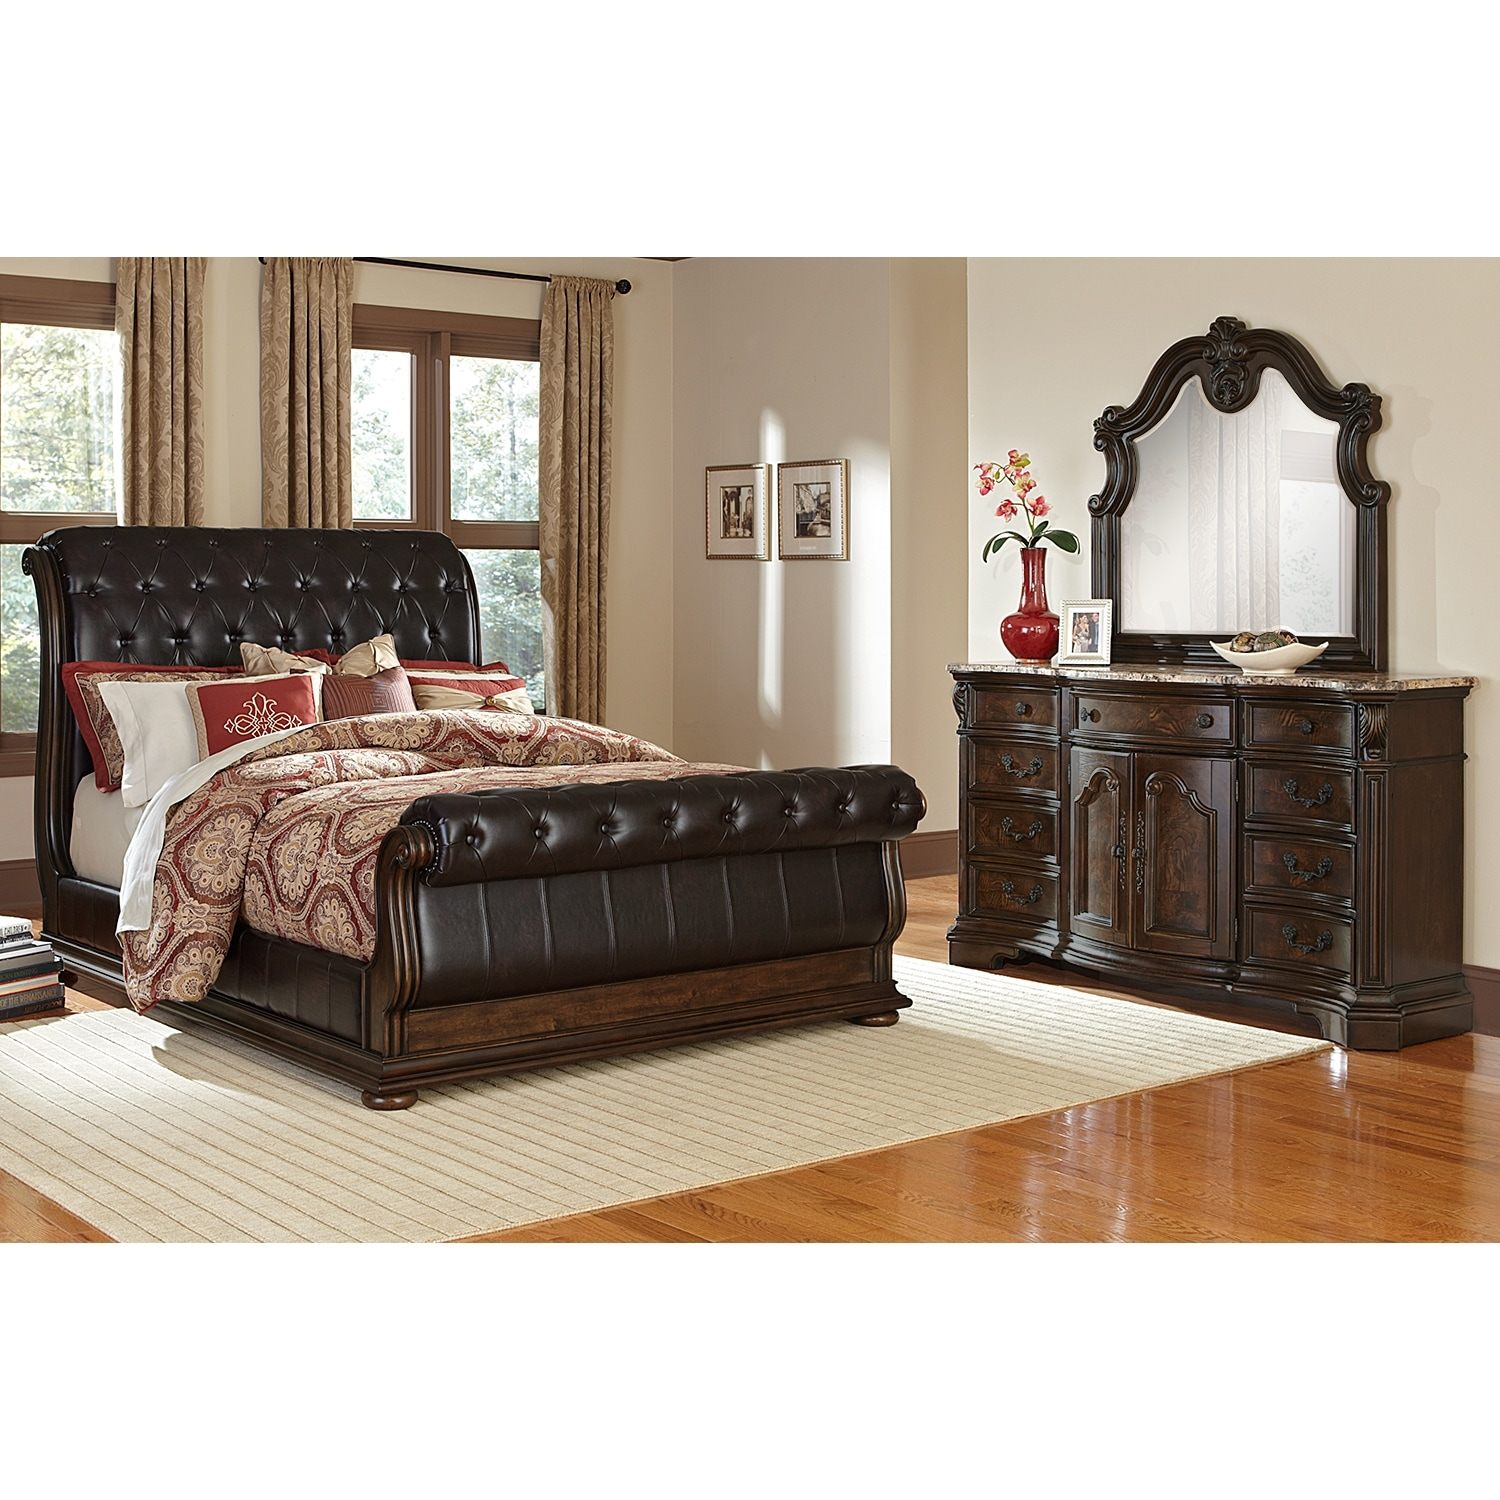 monticello pecan ii 5 pc king bedroom american signature furniture